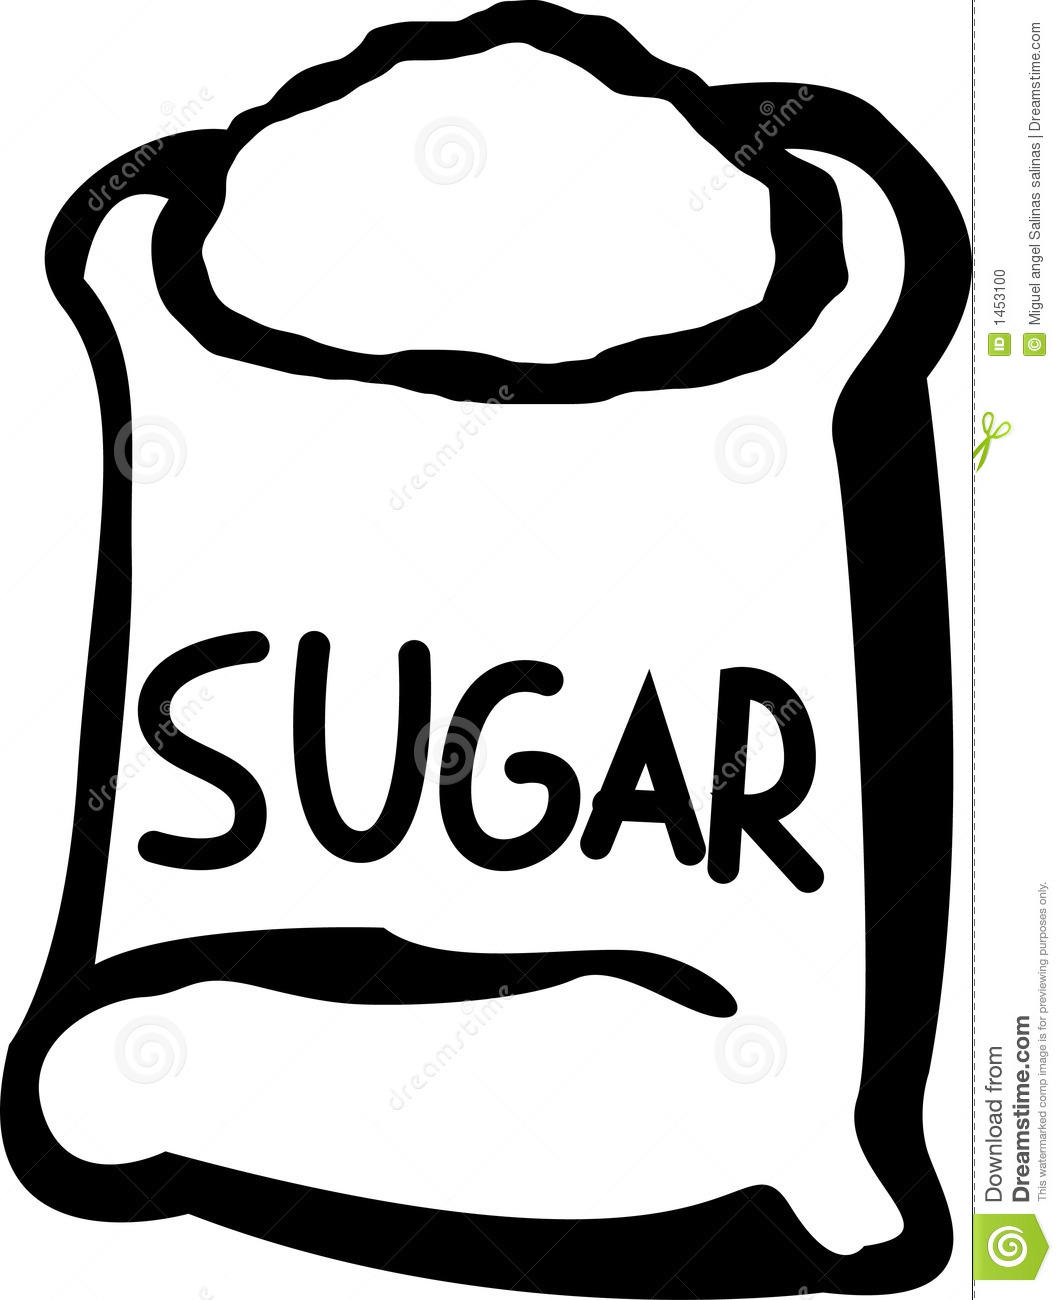 Sugar Bag Vector Illustration Stock Photo - Image: 1453100